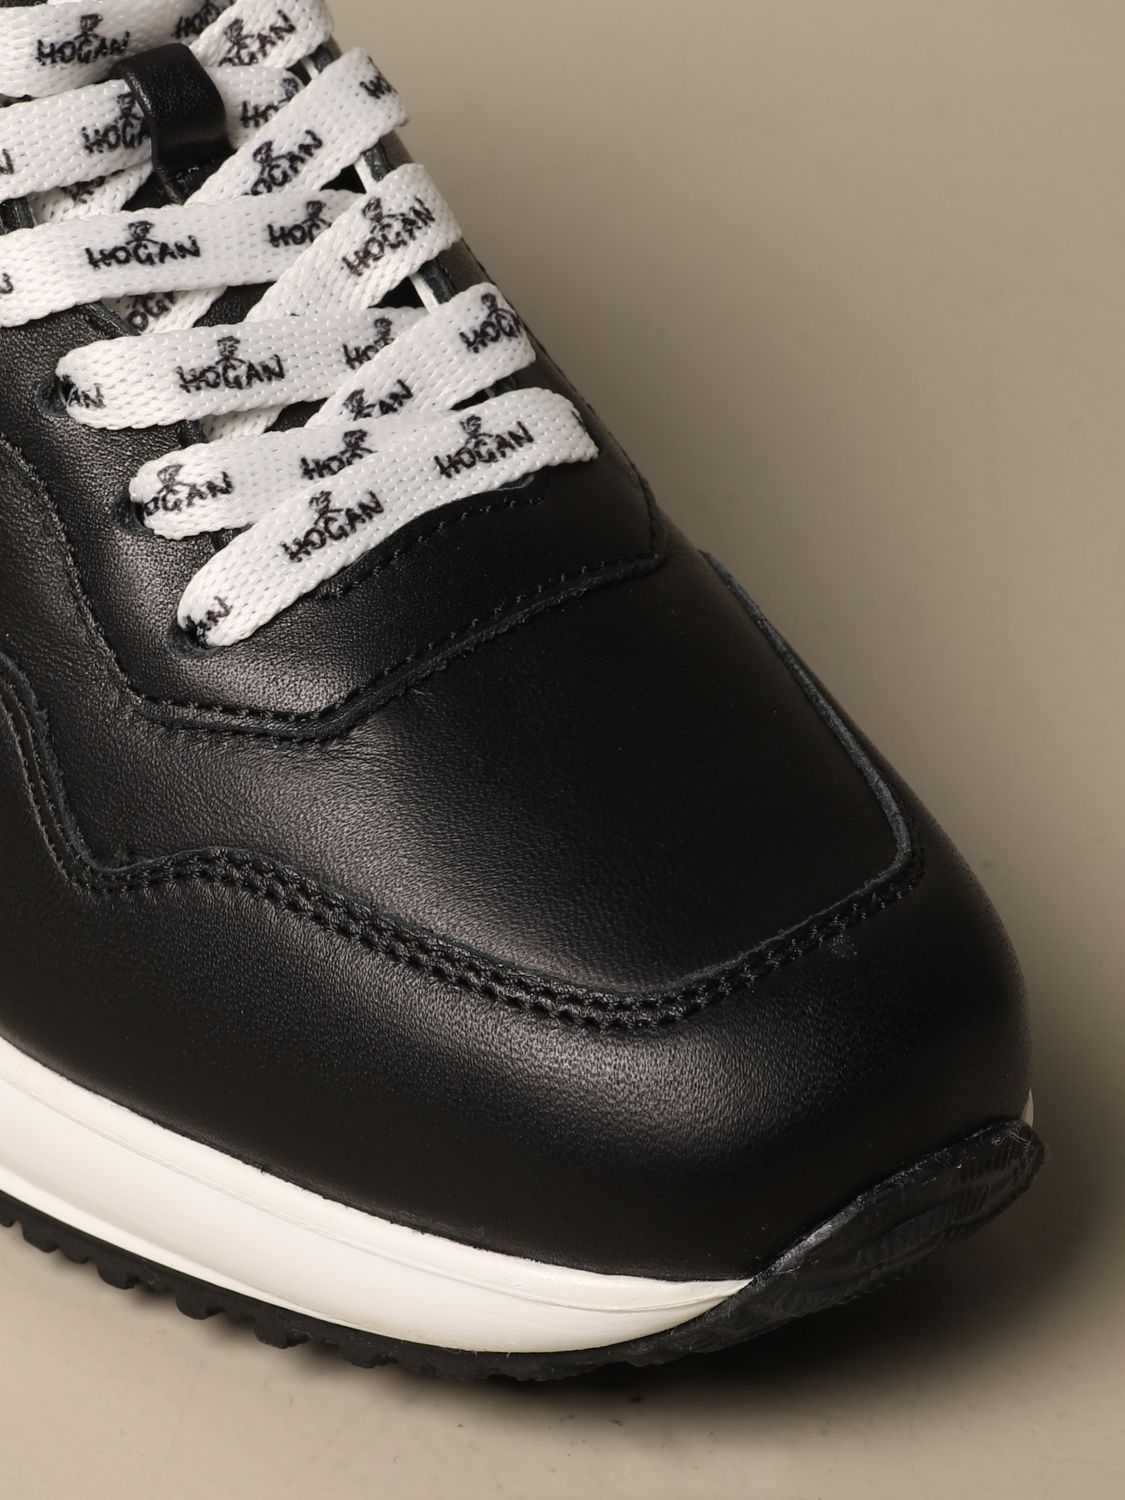 Interactive Hogan leather sneakers with H flock